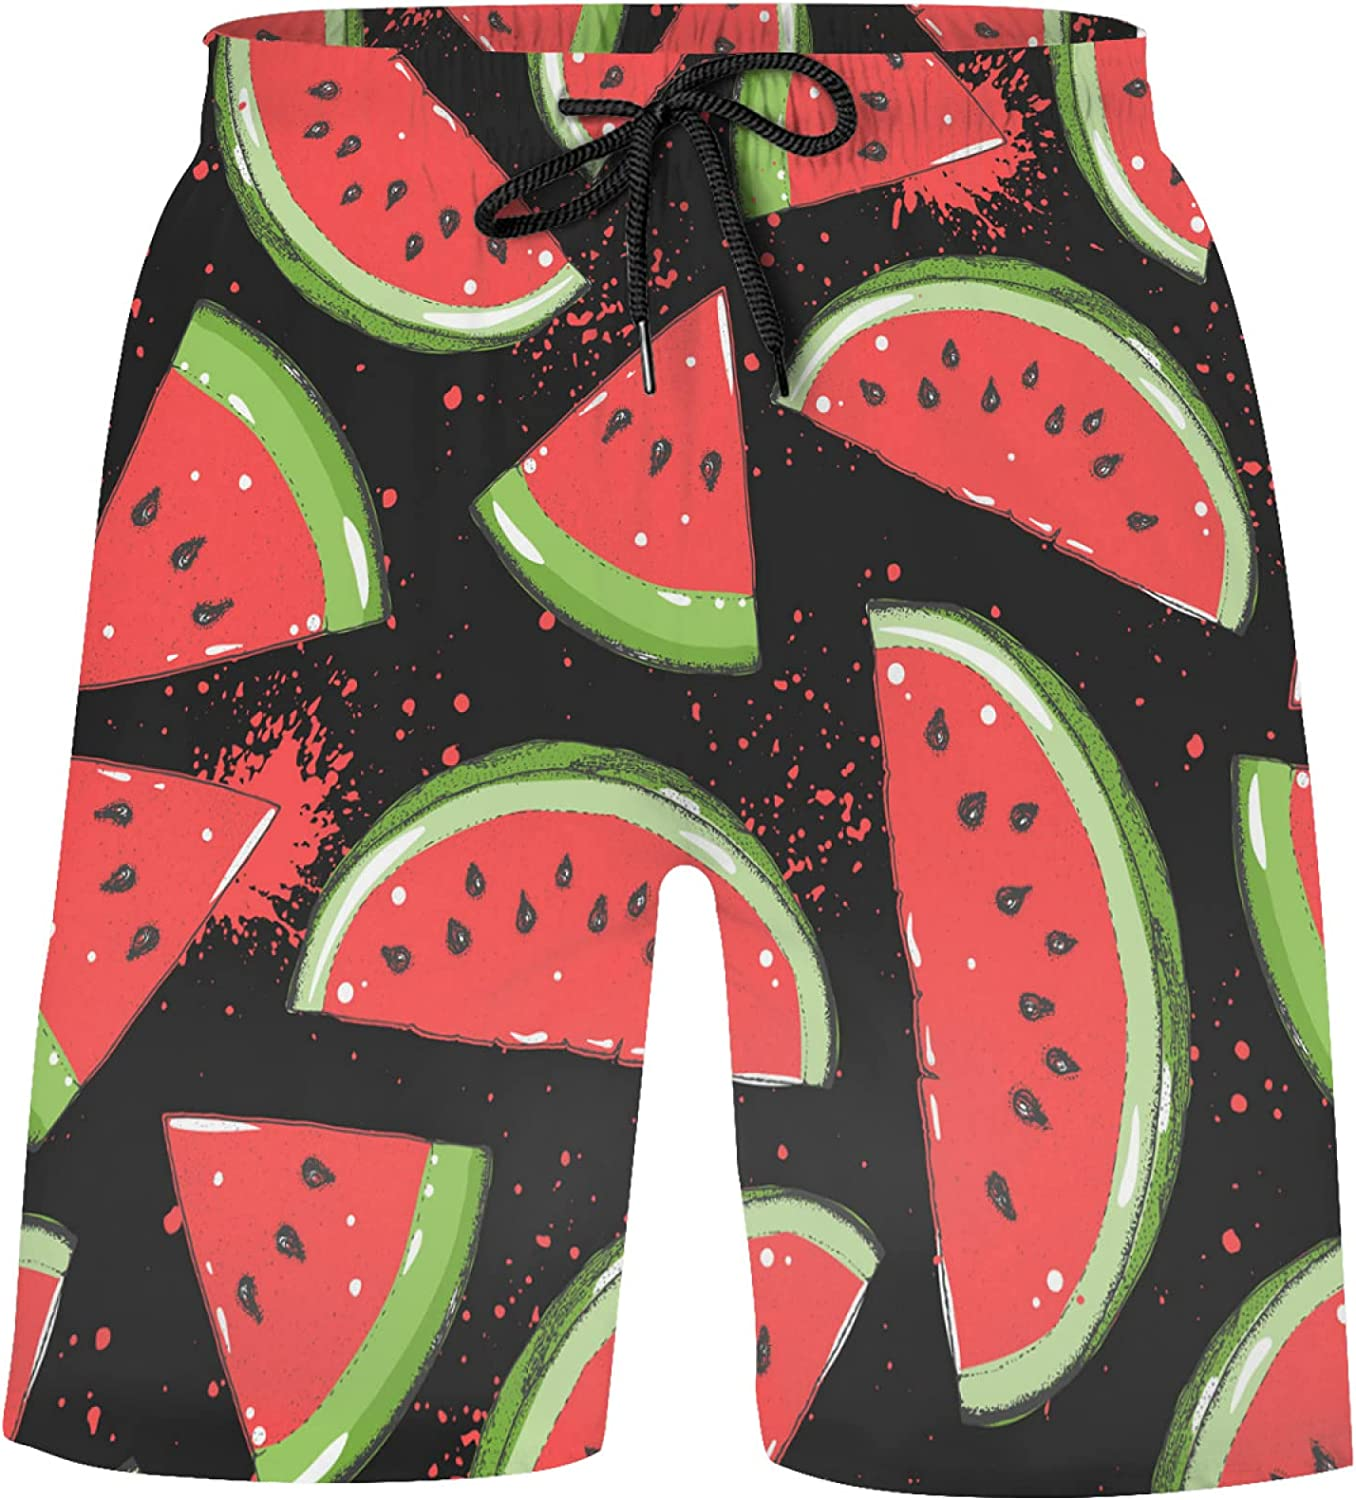 Red Watermelon Tampa Mall Max 42% OFF Slice Bathing Suits f Swim Shorts Trunks Athletic